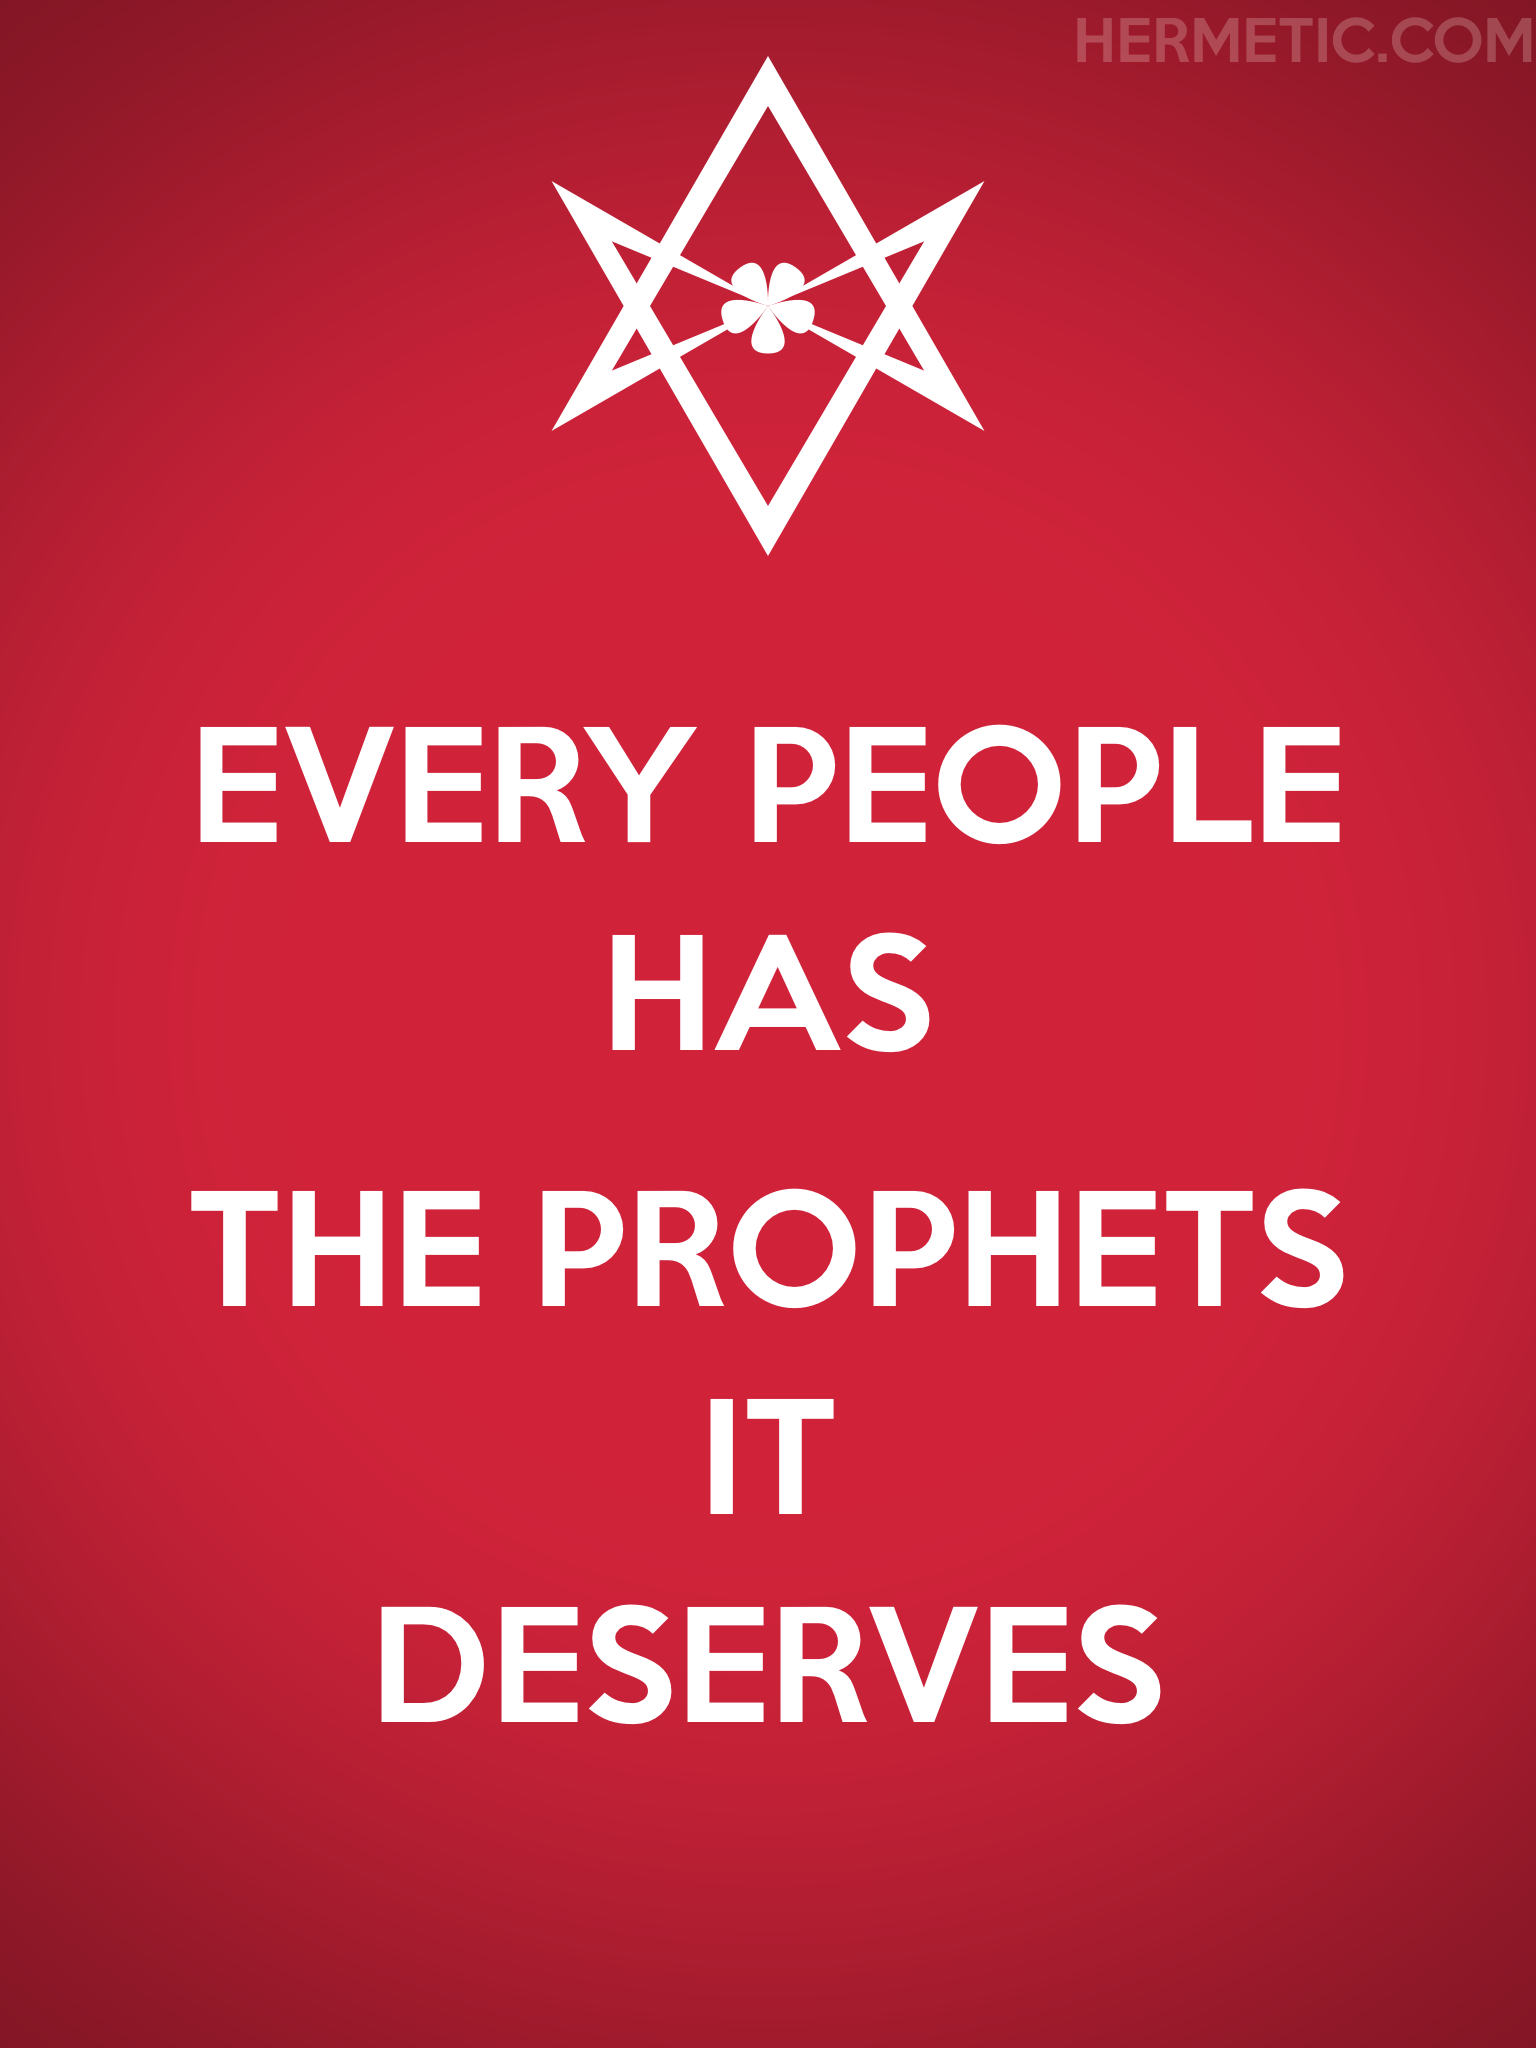 Unicursal THE PROPHETS IT DESERVES Propaganda Poster from Hermetic Library Office of the Ministry of Information